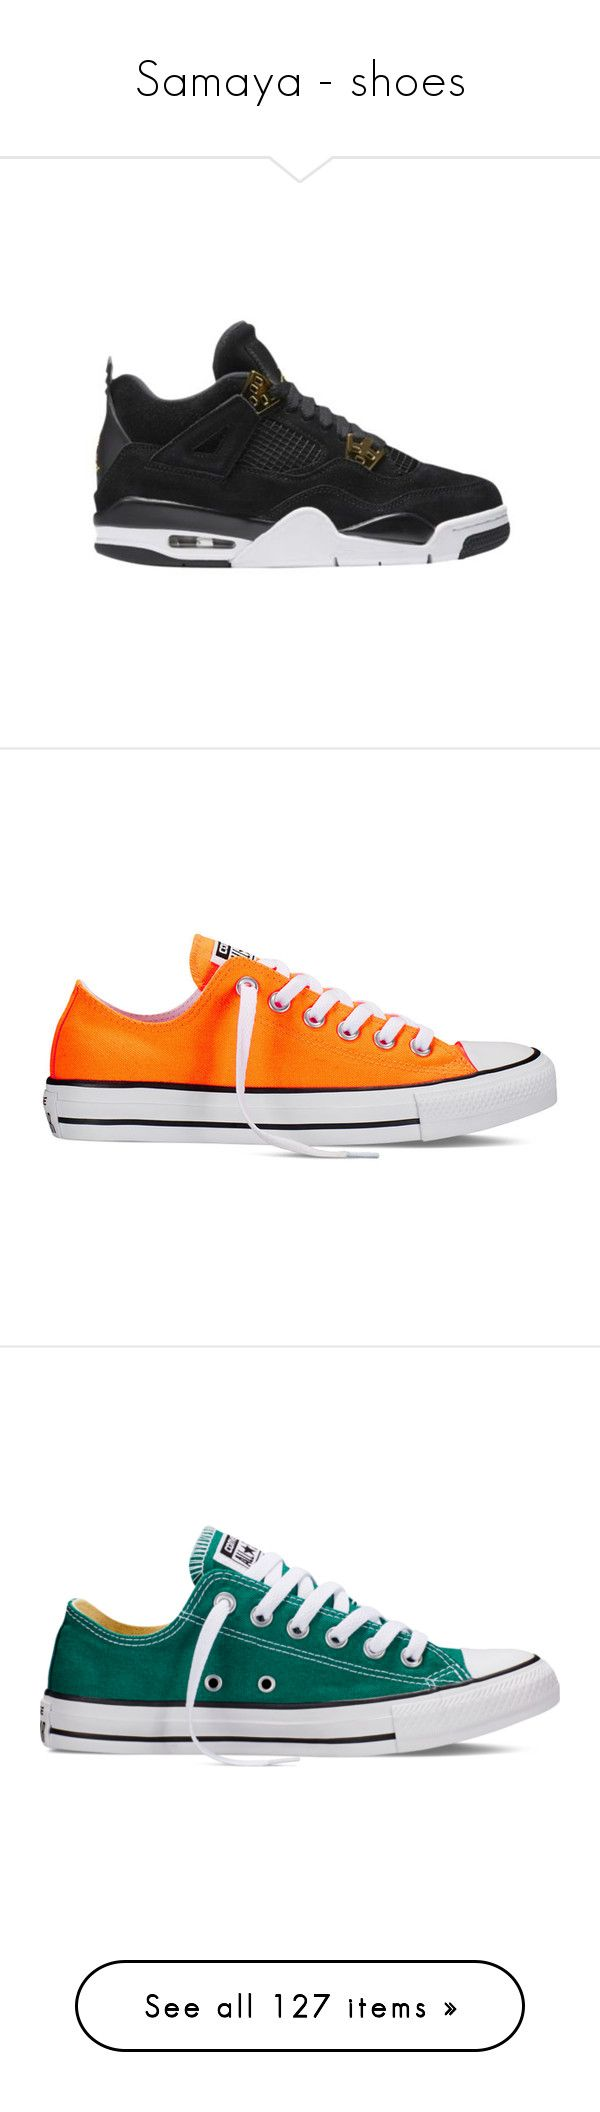 """""""Samaya - shoes"""" by those-families ❤ liked on Polyvore featuring samayamckeyla, shoes, sneakers, converse, orange, neon orange sneakers, neon orange shoes, star shoes, star sneakers and converse sneakers"""